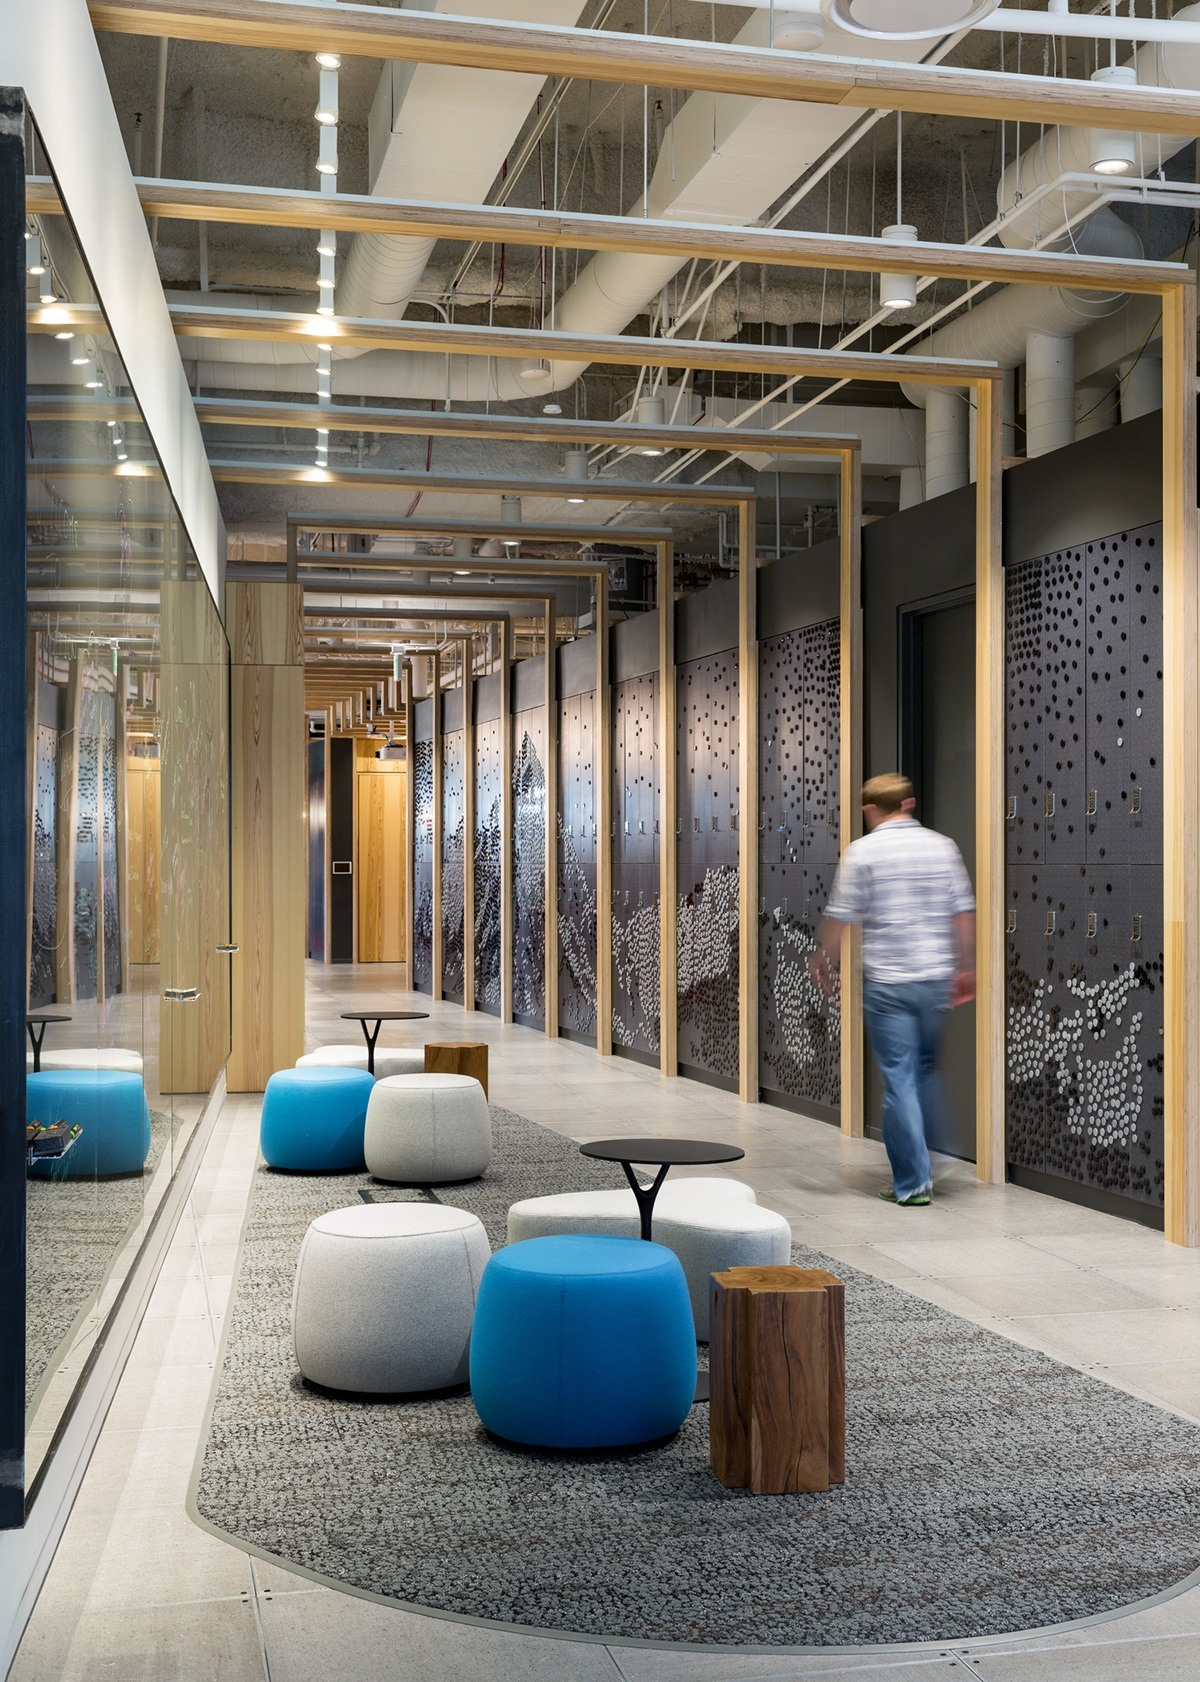 Interior Design Space: A Look Inside KPMG's Ignition Center In Denver